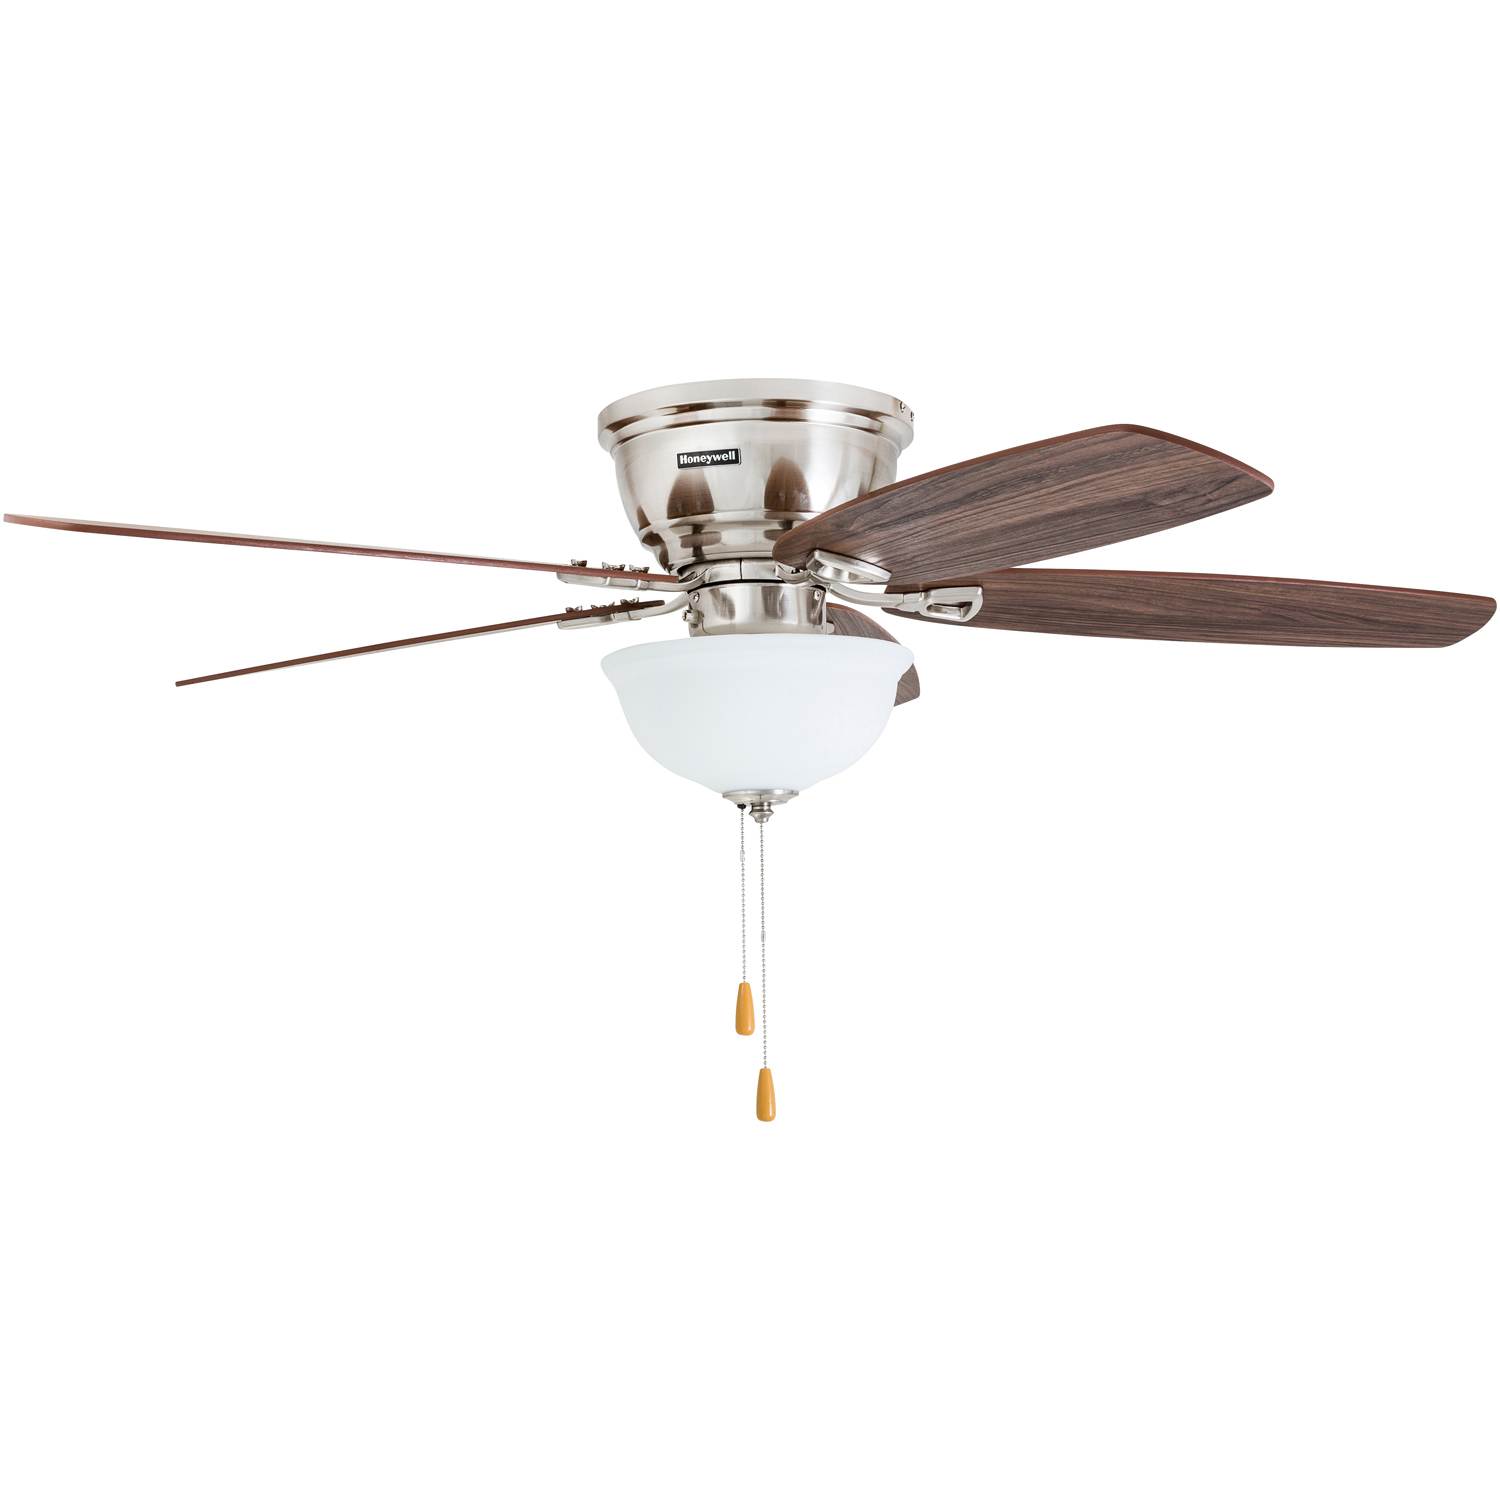 52 Honeywell Eastover Ceiling Fan Brushed Nickel Light Pull Chain Switch Industrial Floor Wiring Diagrams 2016